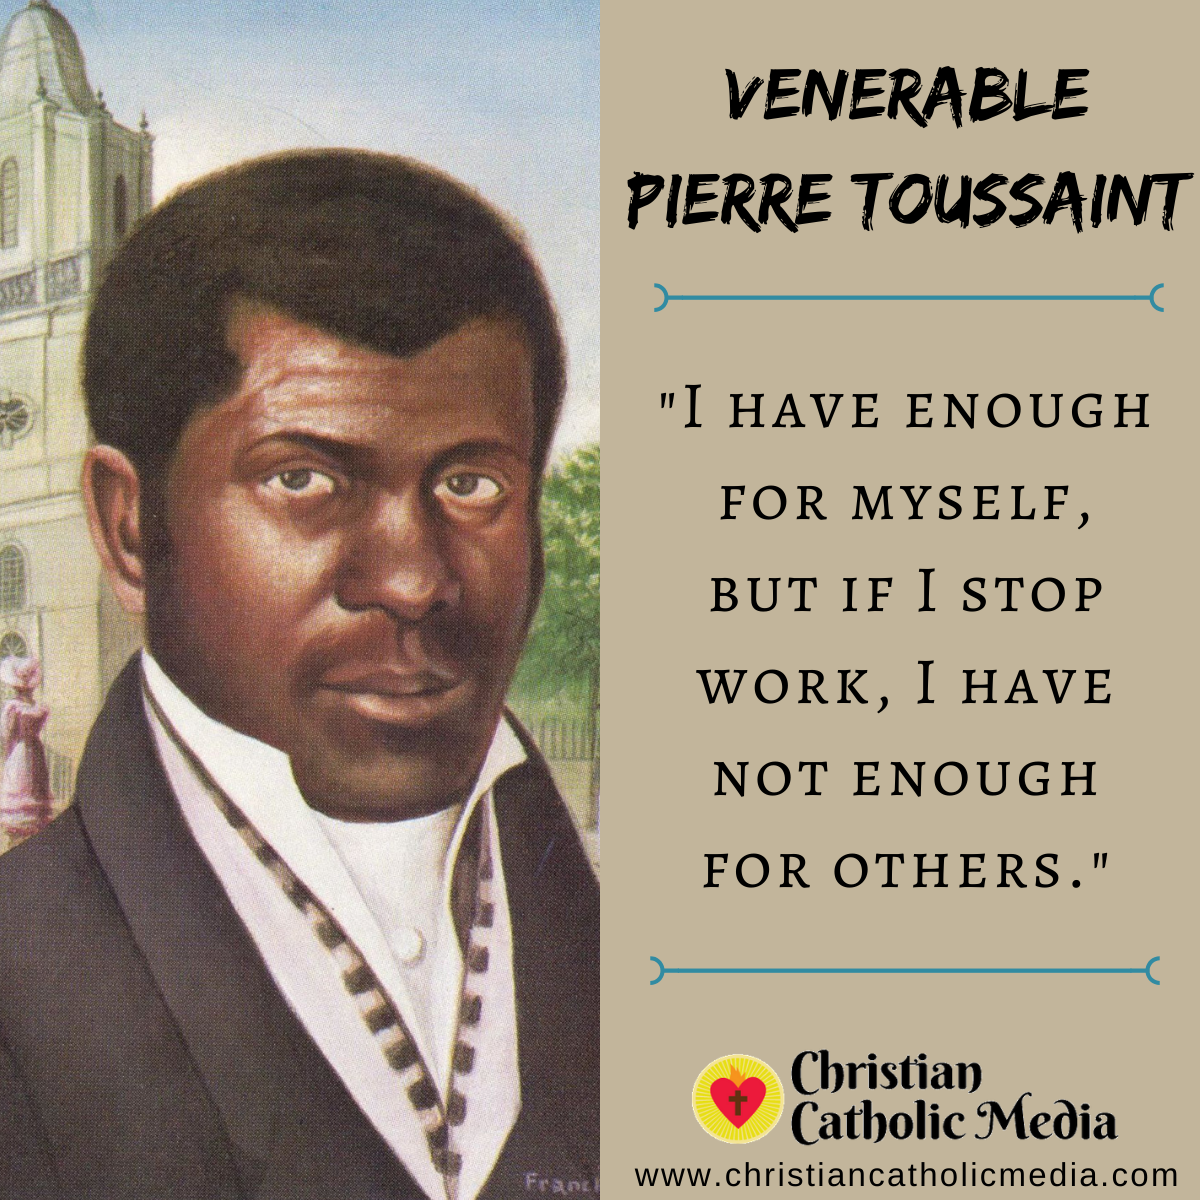 Venerable Pierre Toussaint - Thursday May 28, 2020